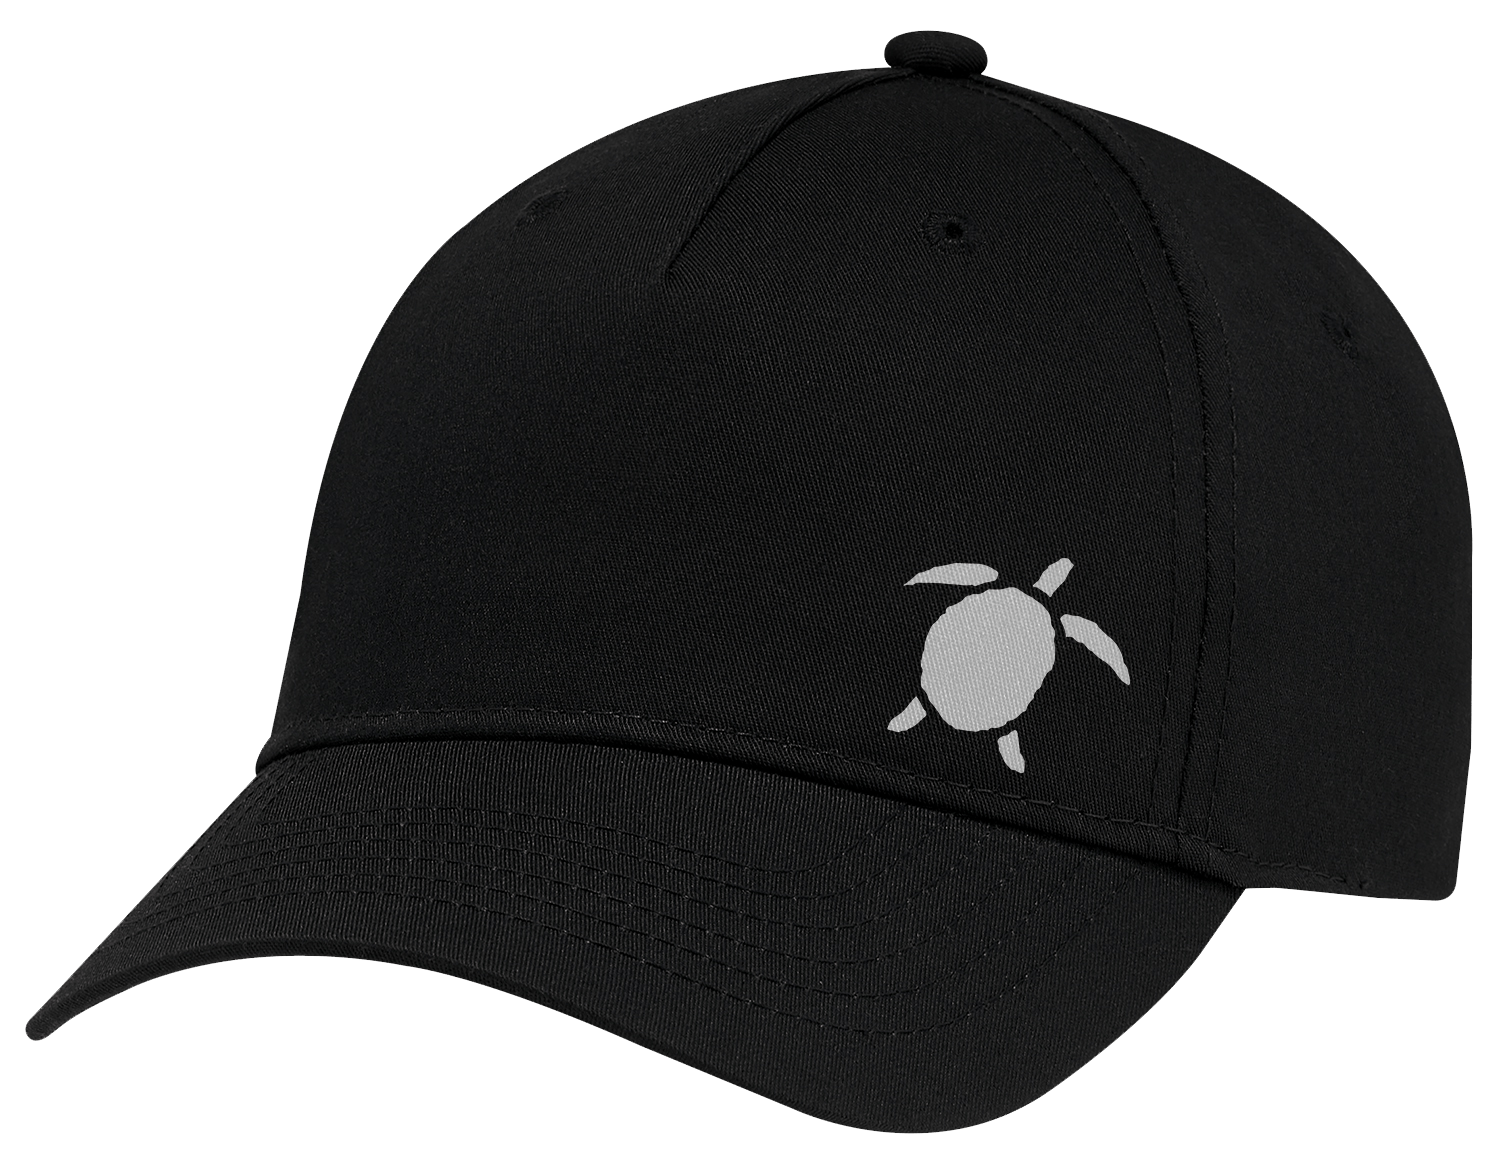 Turtle Beach Clothing little turtle black snap back hat